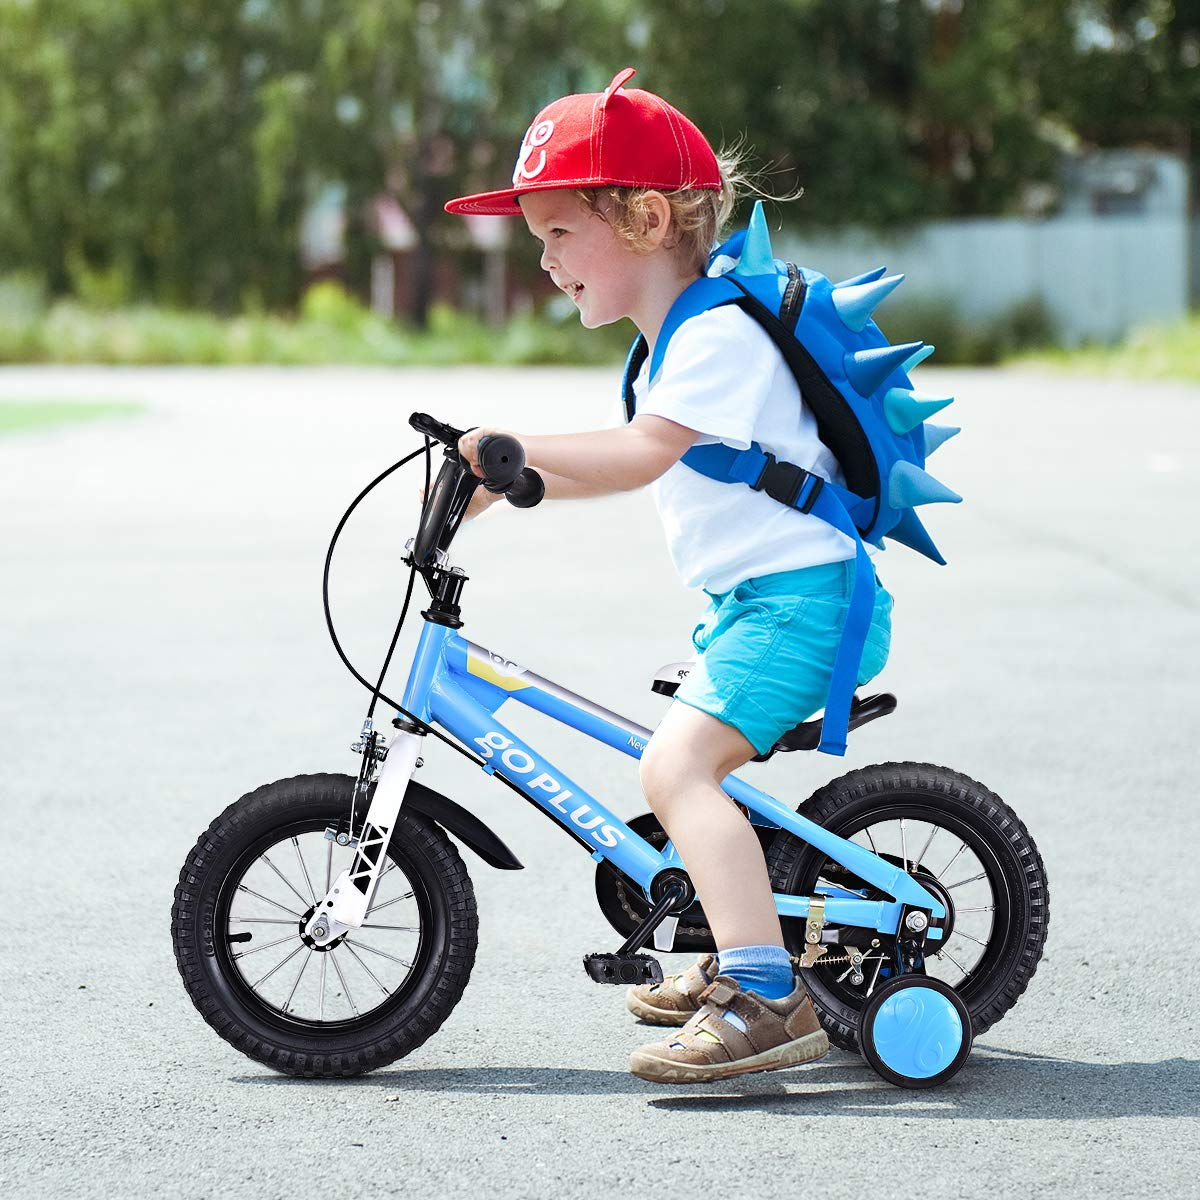 d854b3d9997 Amazon.com   Goplus Freestyle Kids Bike Bicycle 12inch  16inch  20inch  Balance Bike with Training Wheels for Boy s and Girl s   Sports   Outdoors